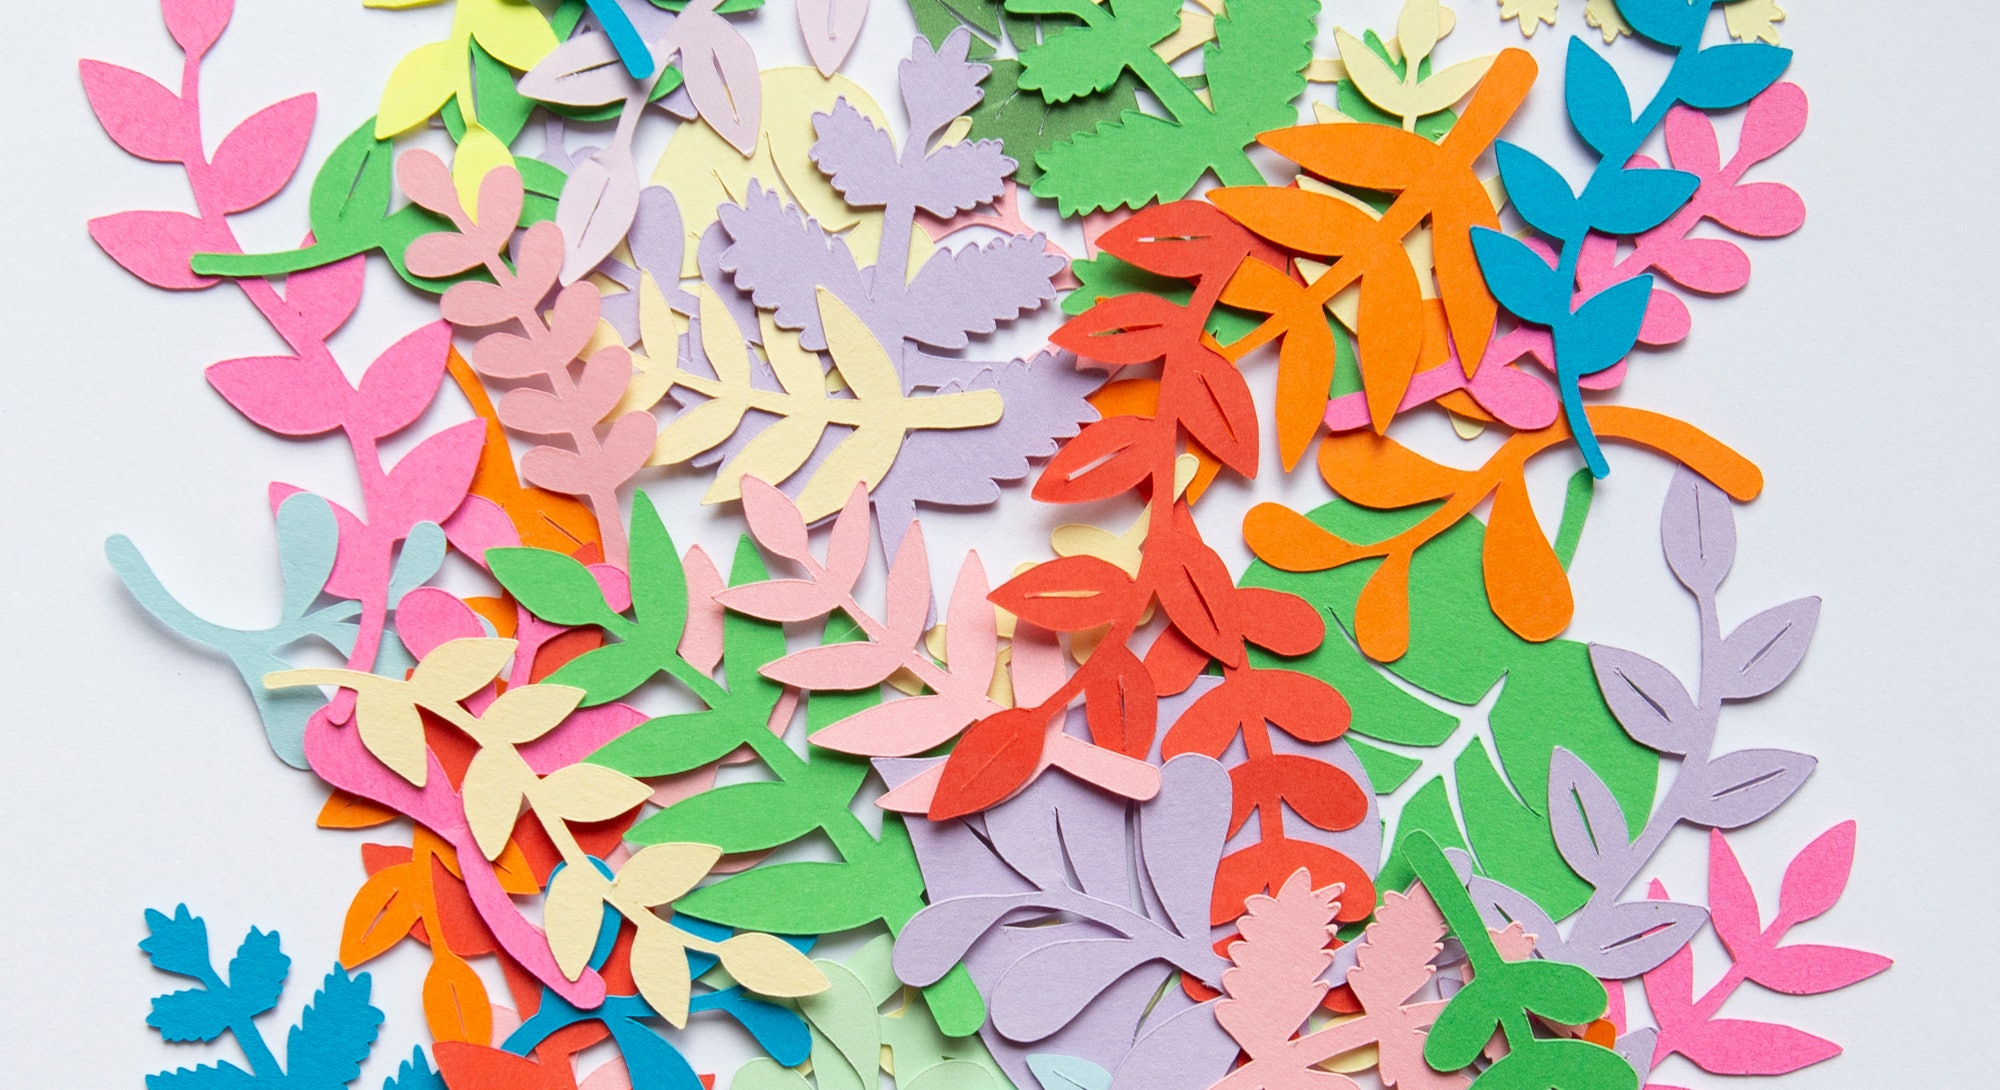 Colorful paper leafs shot from above.